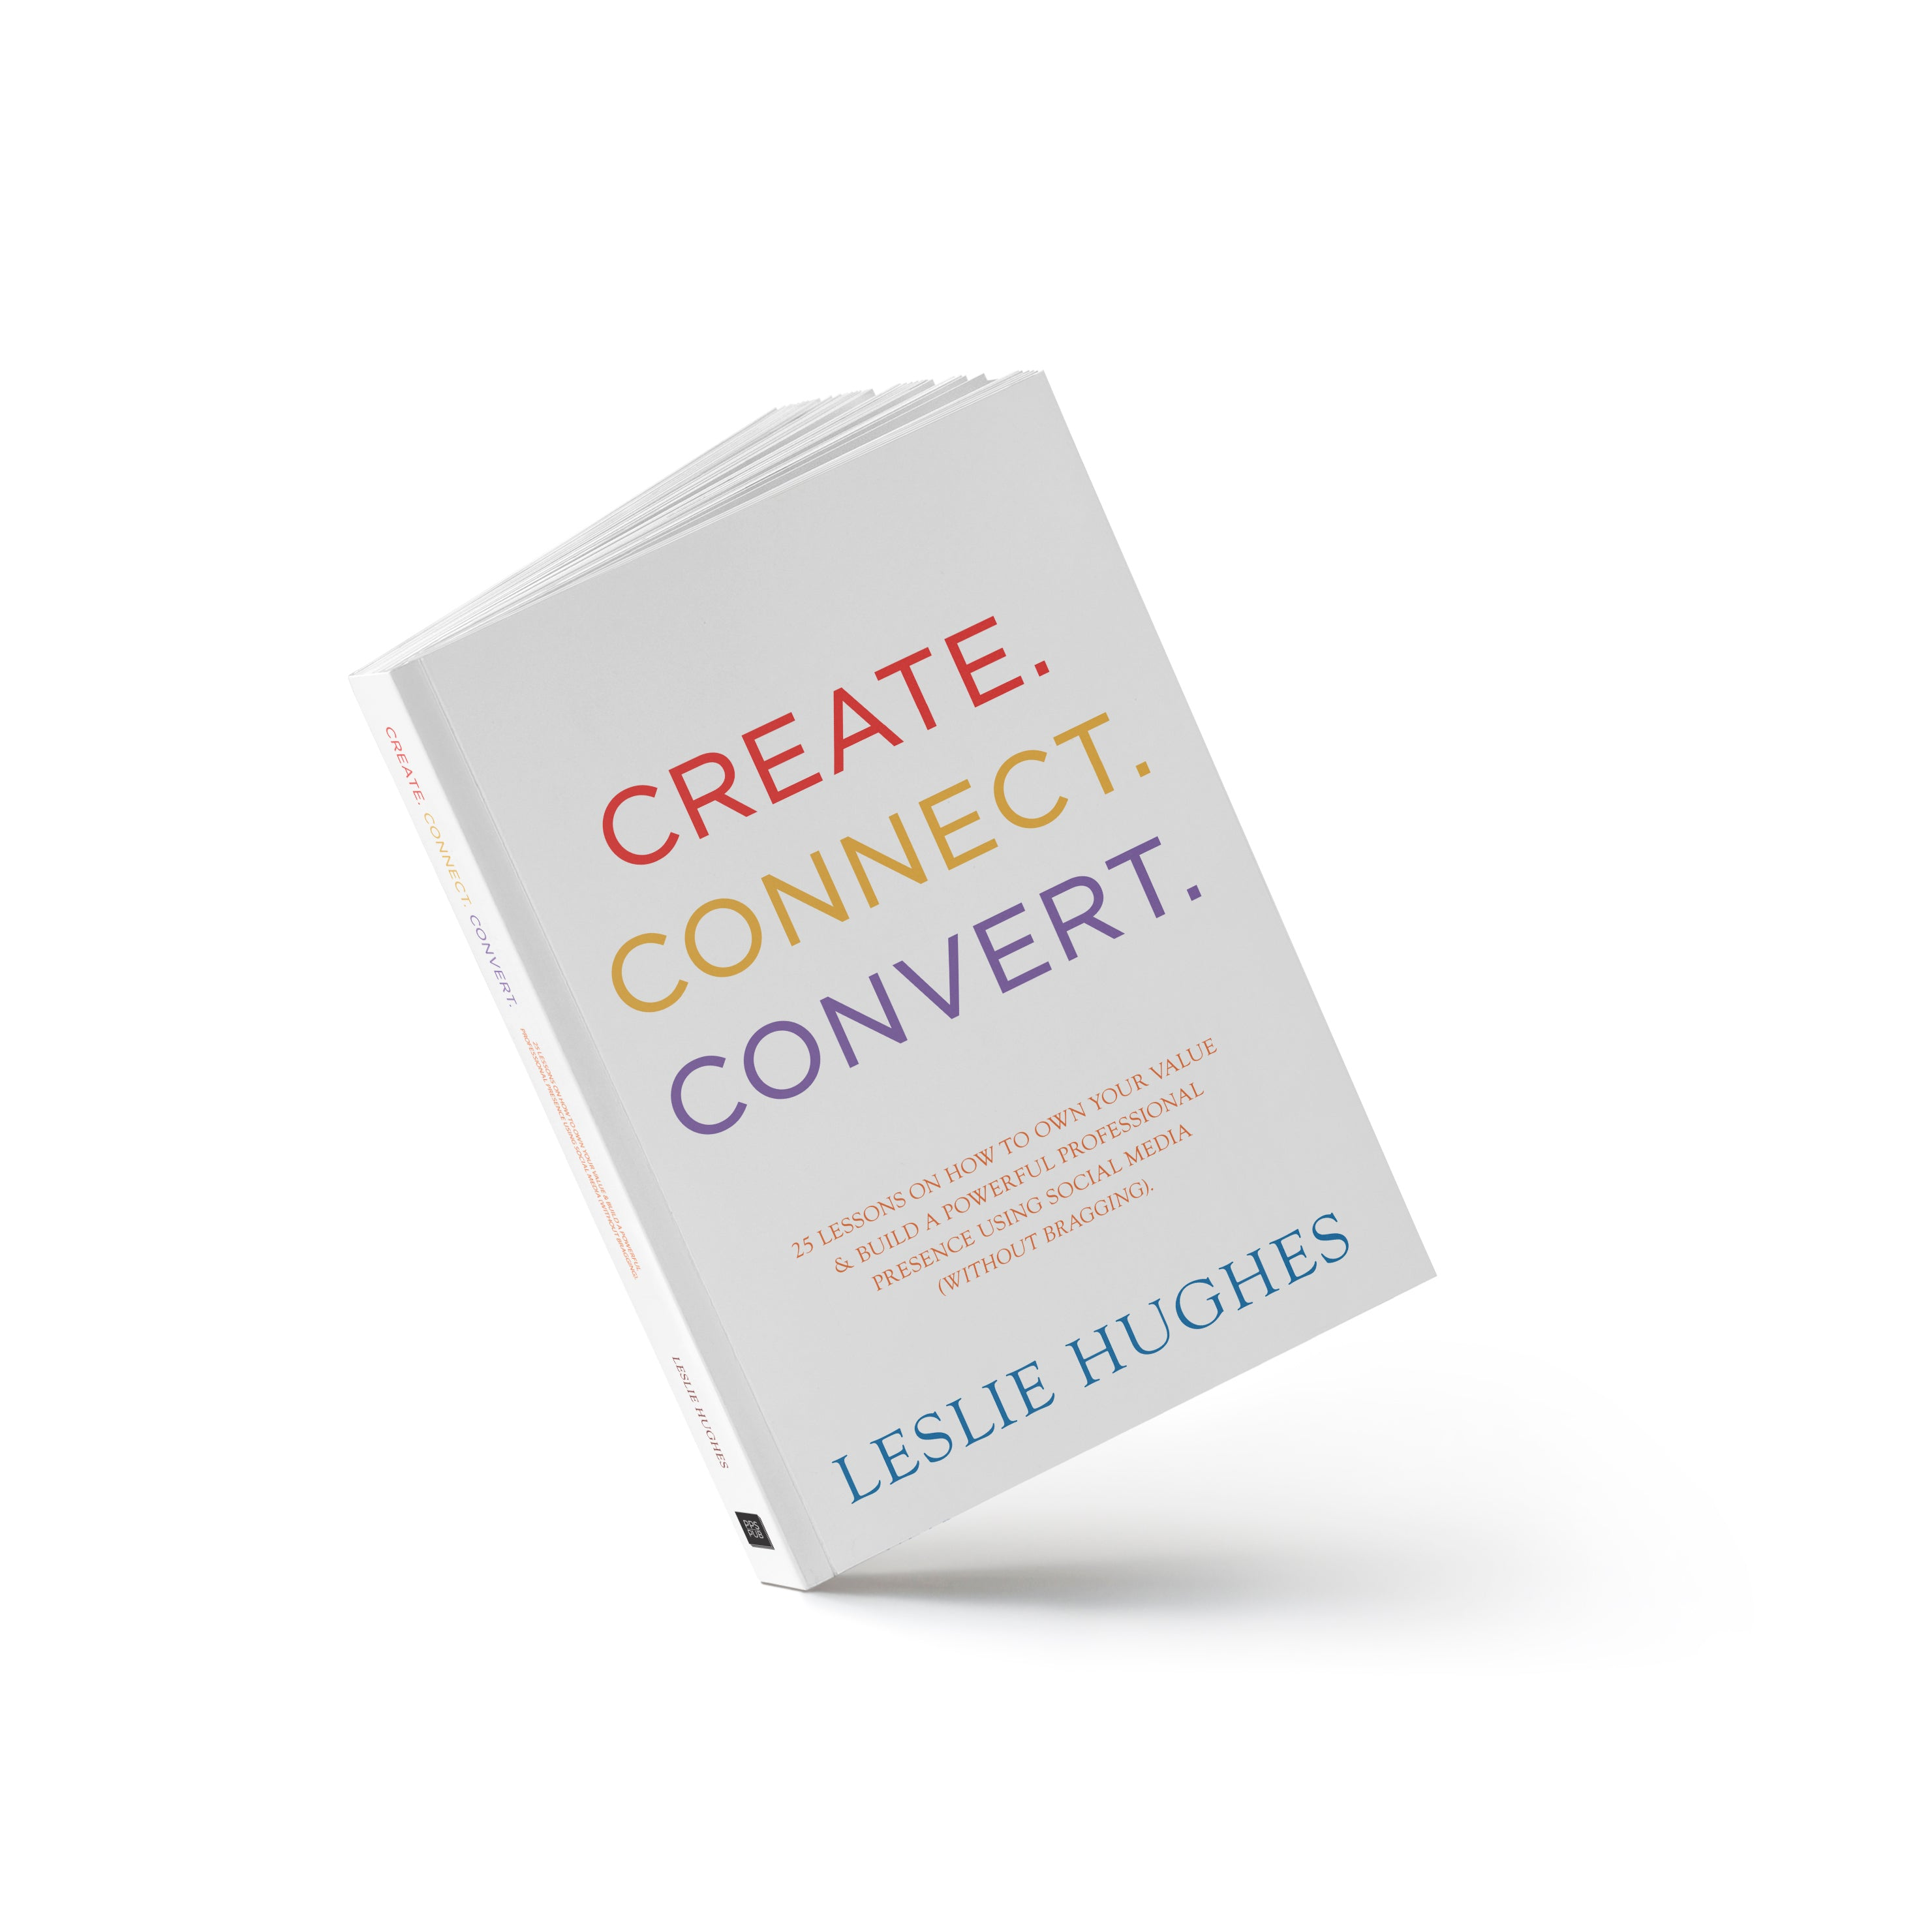 Create. Connect. Convert.